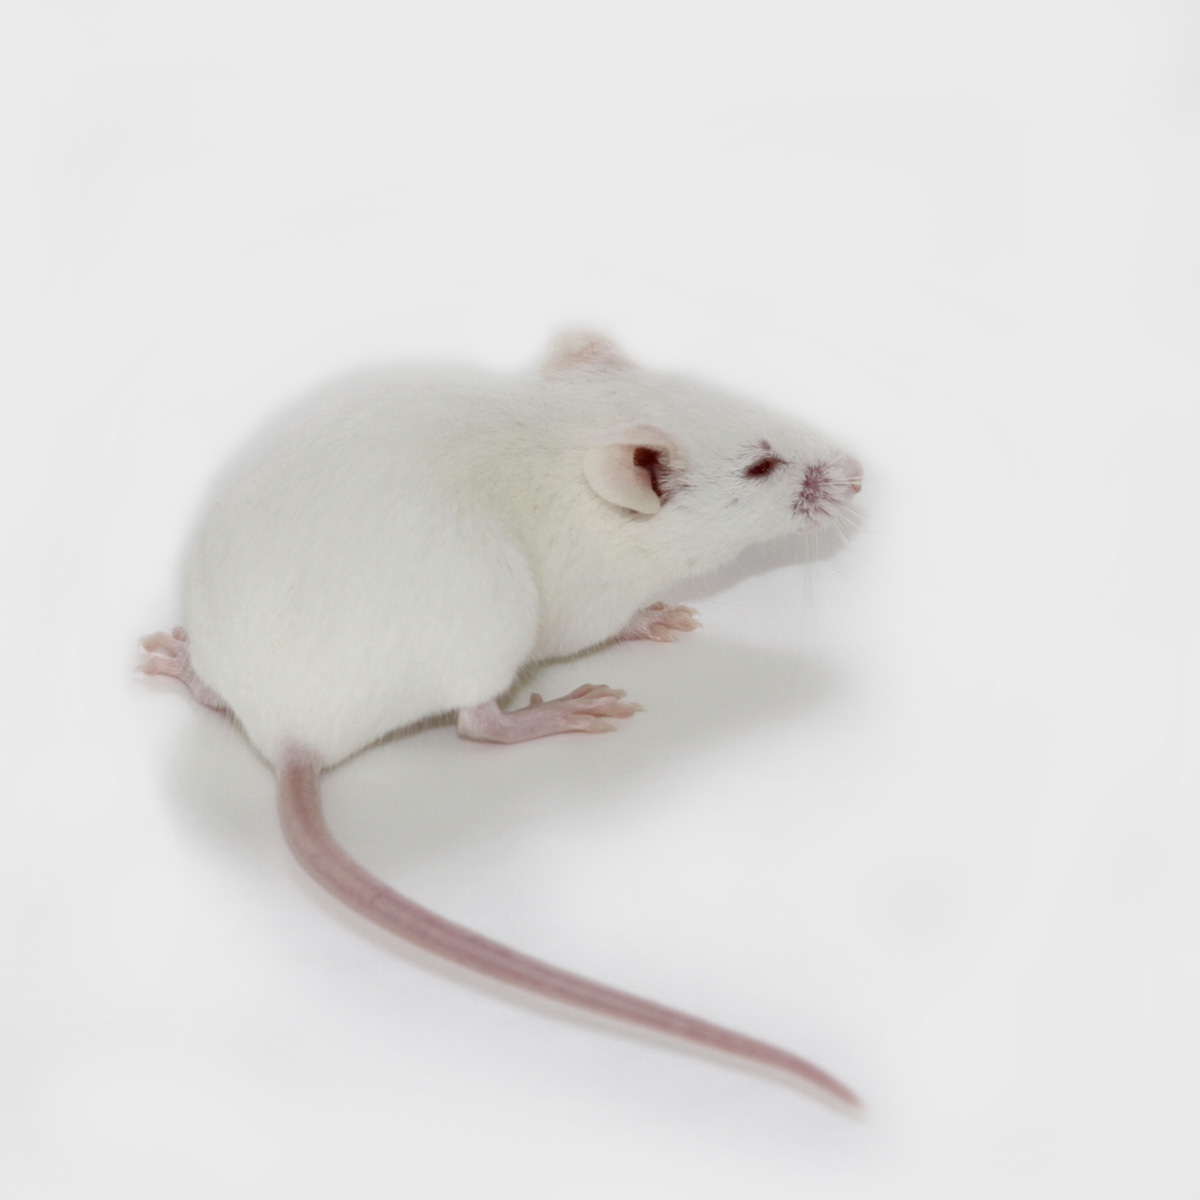 lab mouse pictures - HD1200×1200